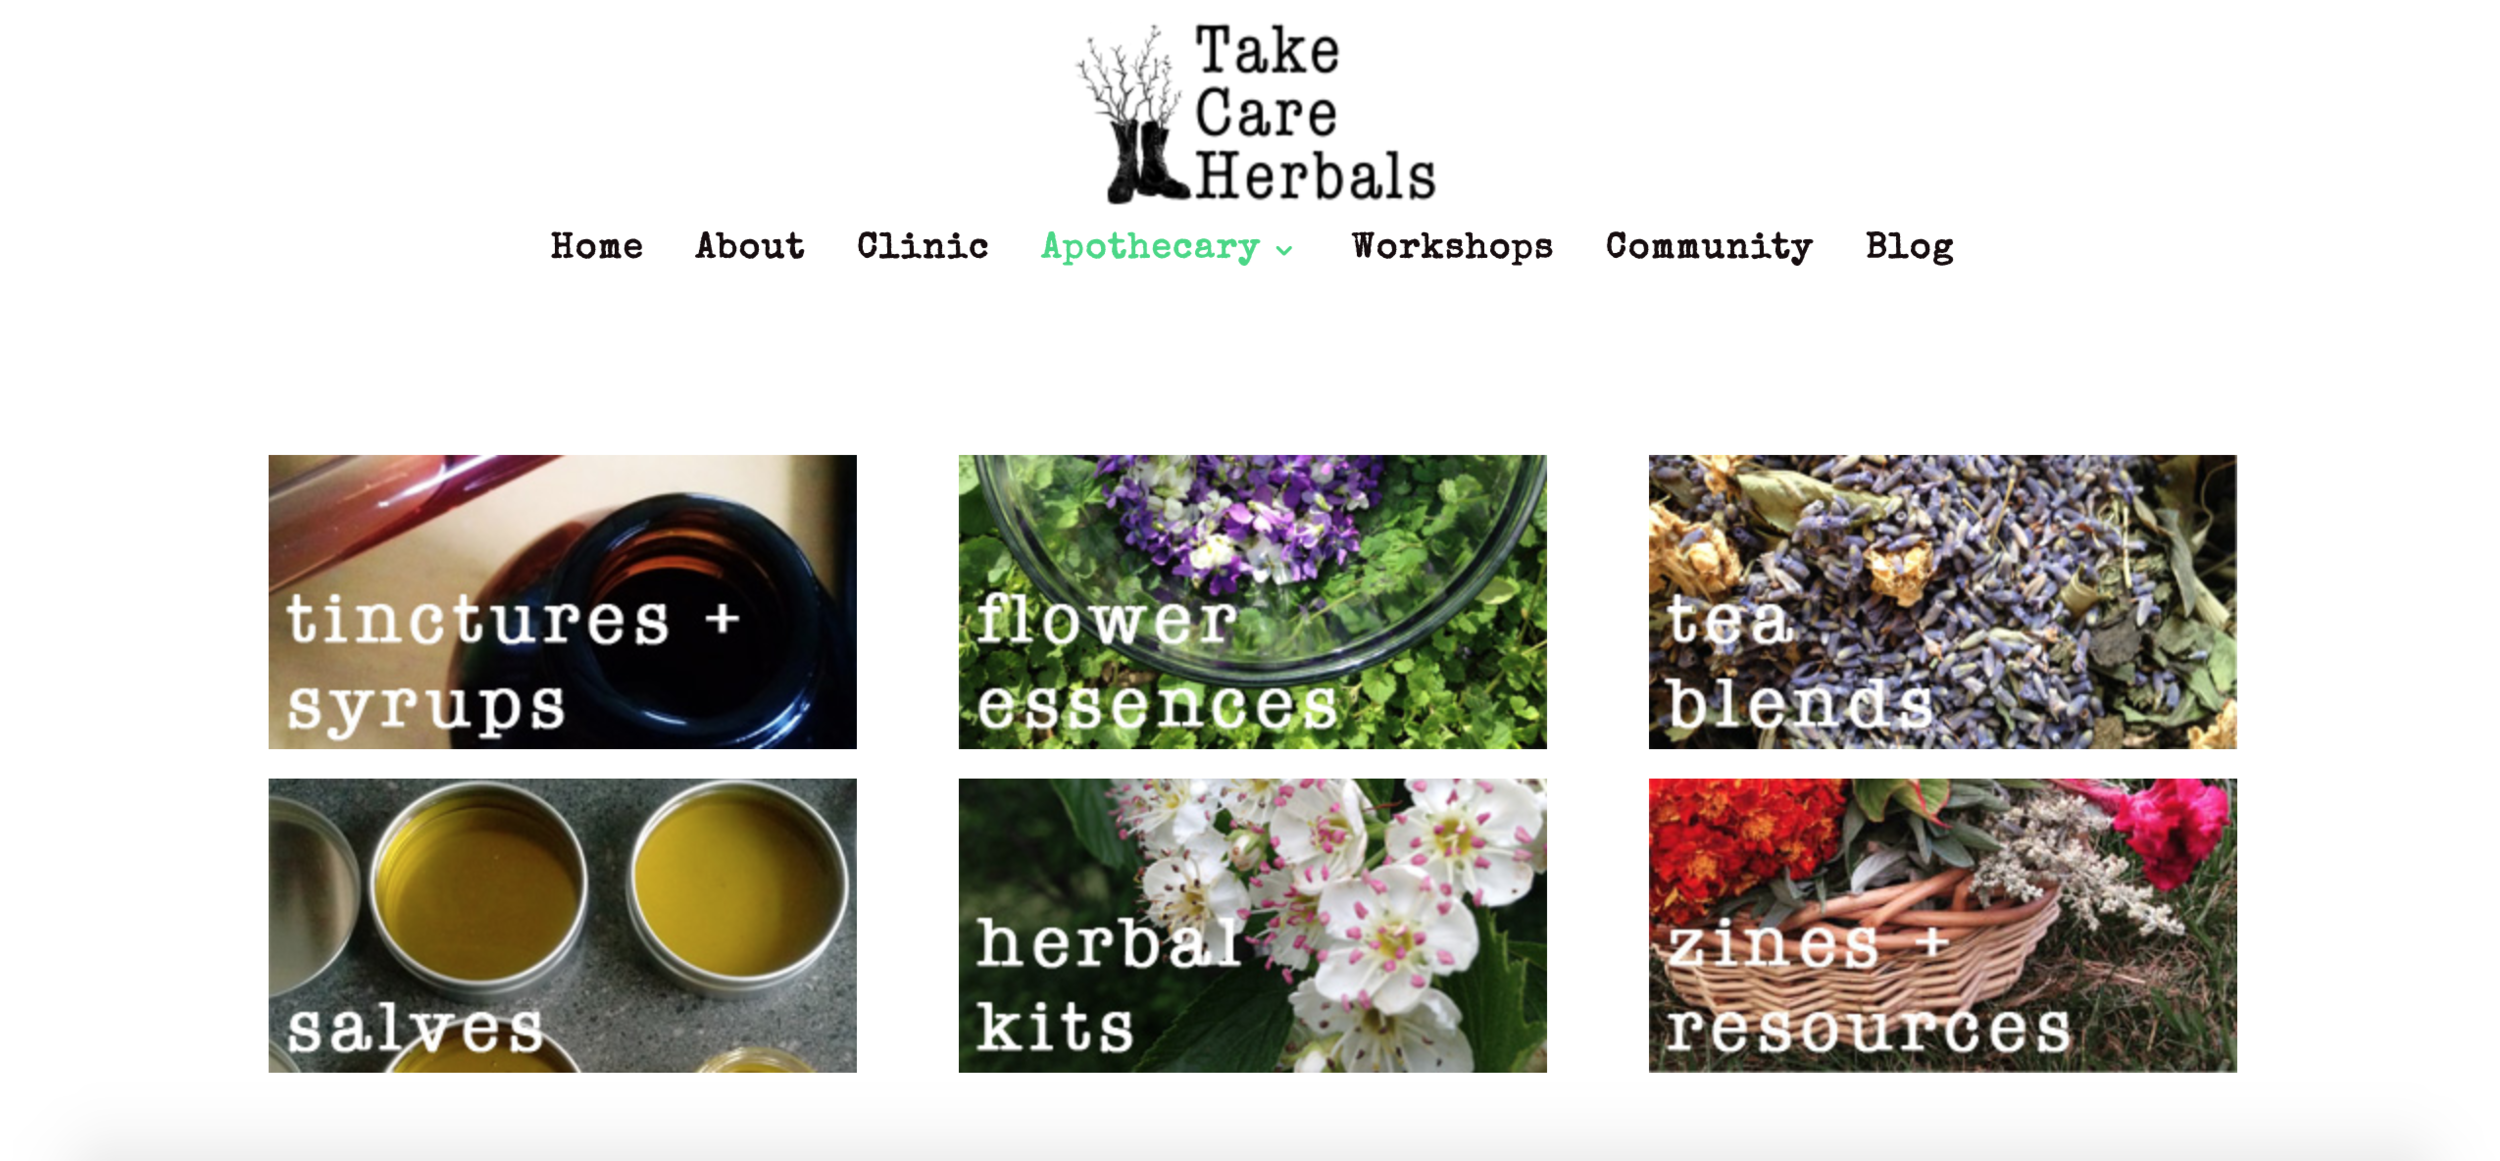 Take_Care_Herbals_Apothecary.png